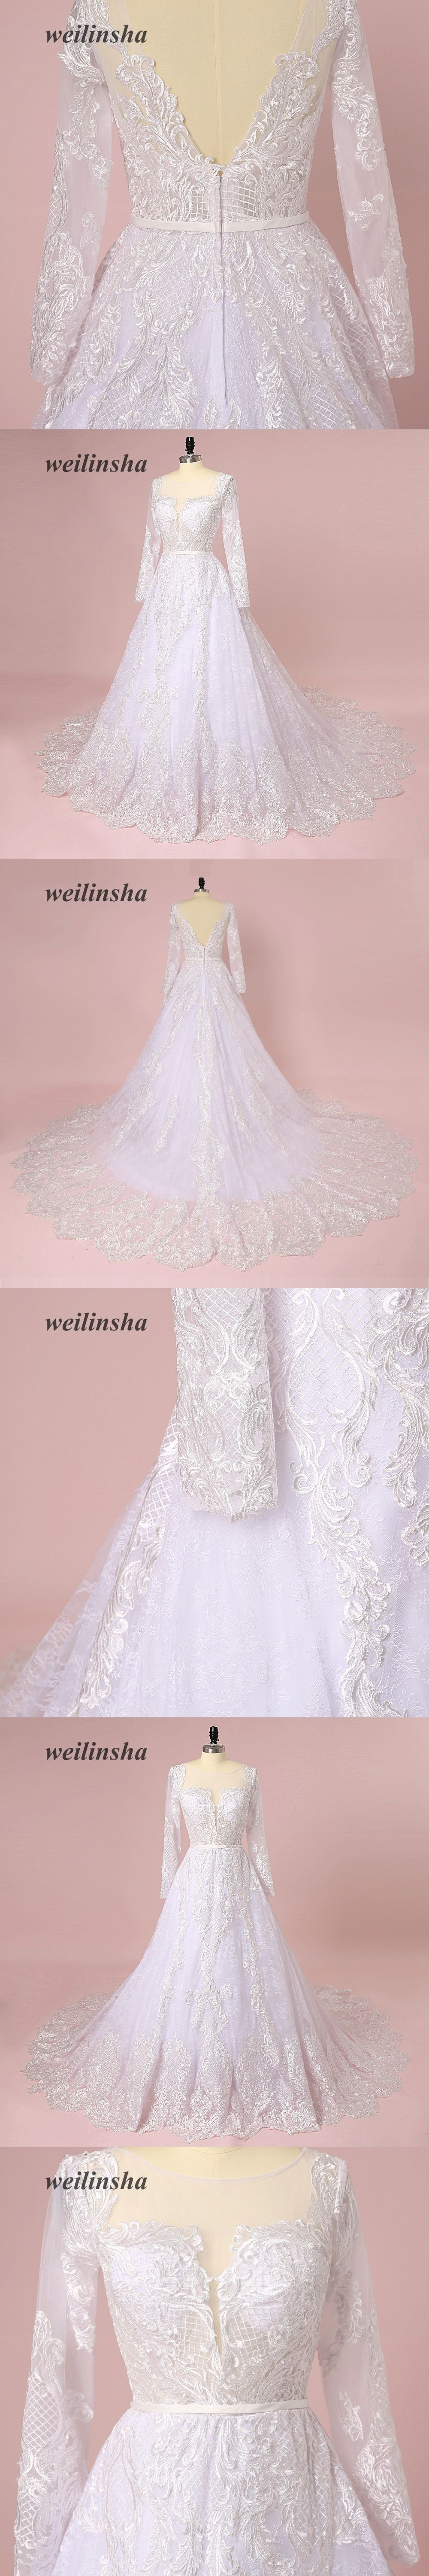 Weilinsha new arrival luxurious wedding dresses vintage style